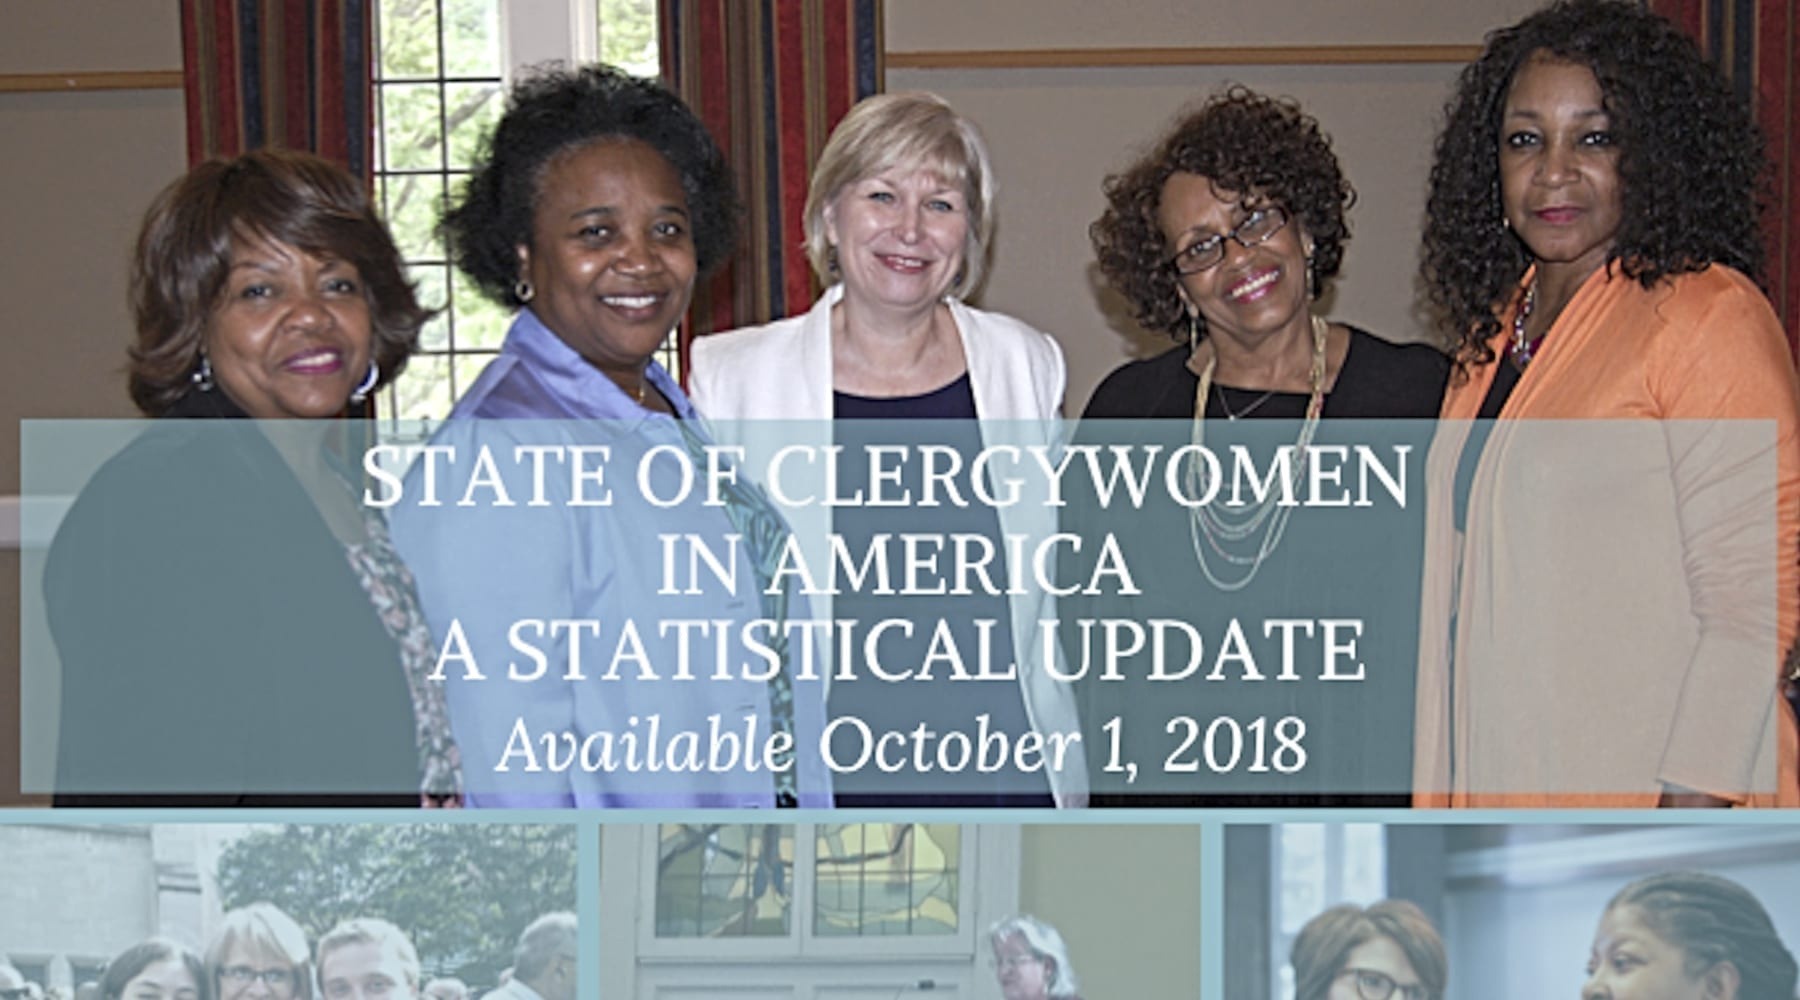 Forthcoming Report Will Document State of U.S. Clergywomen